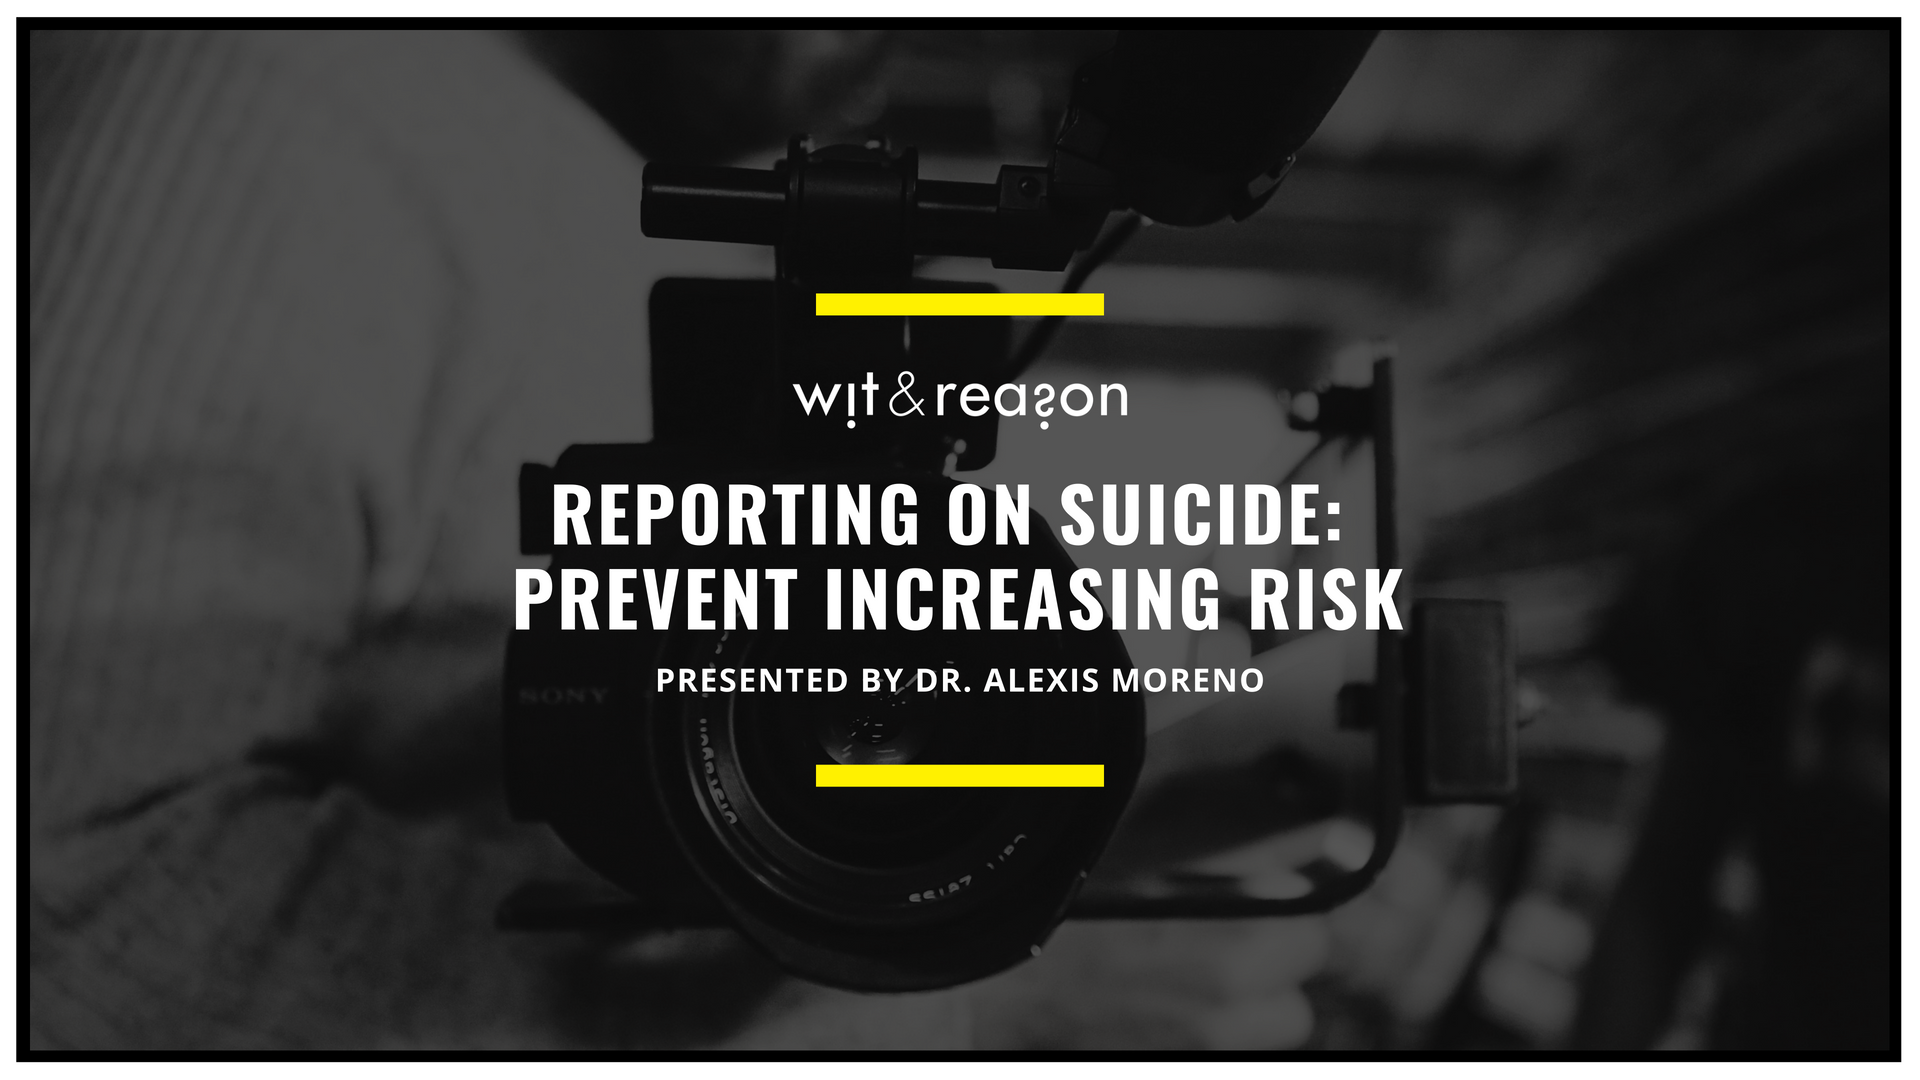 Reporting on Suicide: Prevent Increasing Risk , Dr. Alexis Moreno, Wit & Reason  In honor of National Suicide Awareness and Prevention Week, we are publishing a free webinar specifically for media personnel who are responsible for covering suicide. Click here for a downloadable PDF of the webinar slides and access to schedule Dr. Moreno for a complimentary live virtual presentation of the webinar for your staff.